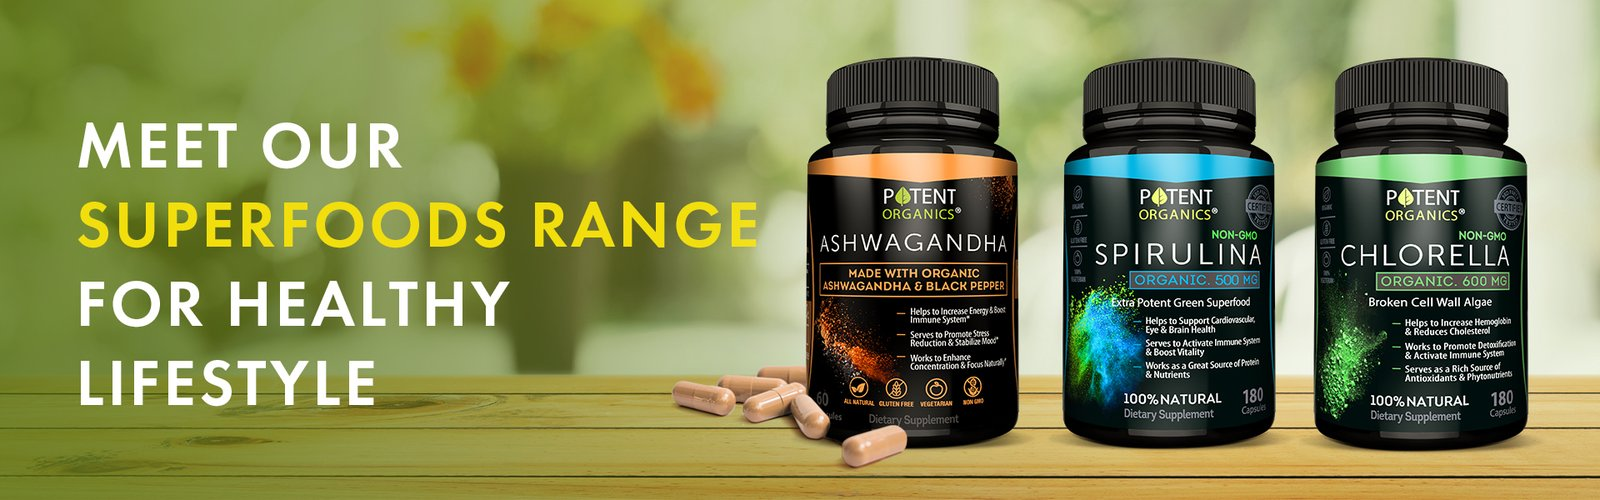 Potent Organics Green Coffee convenience